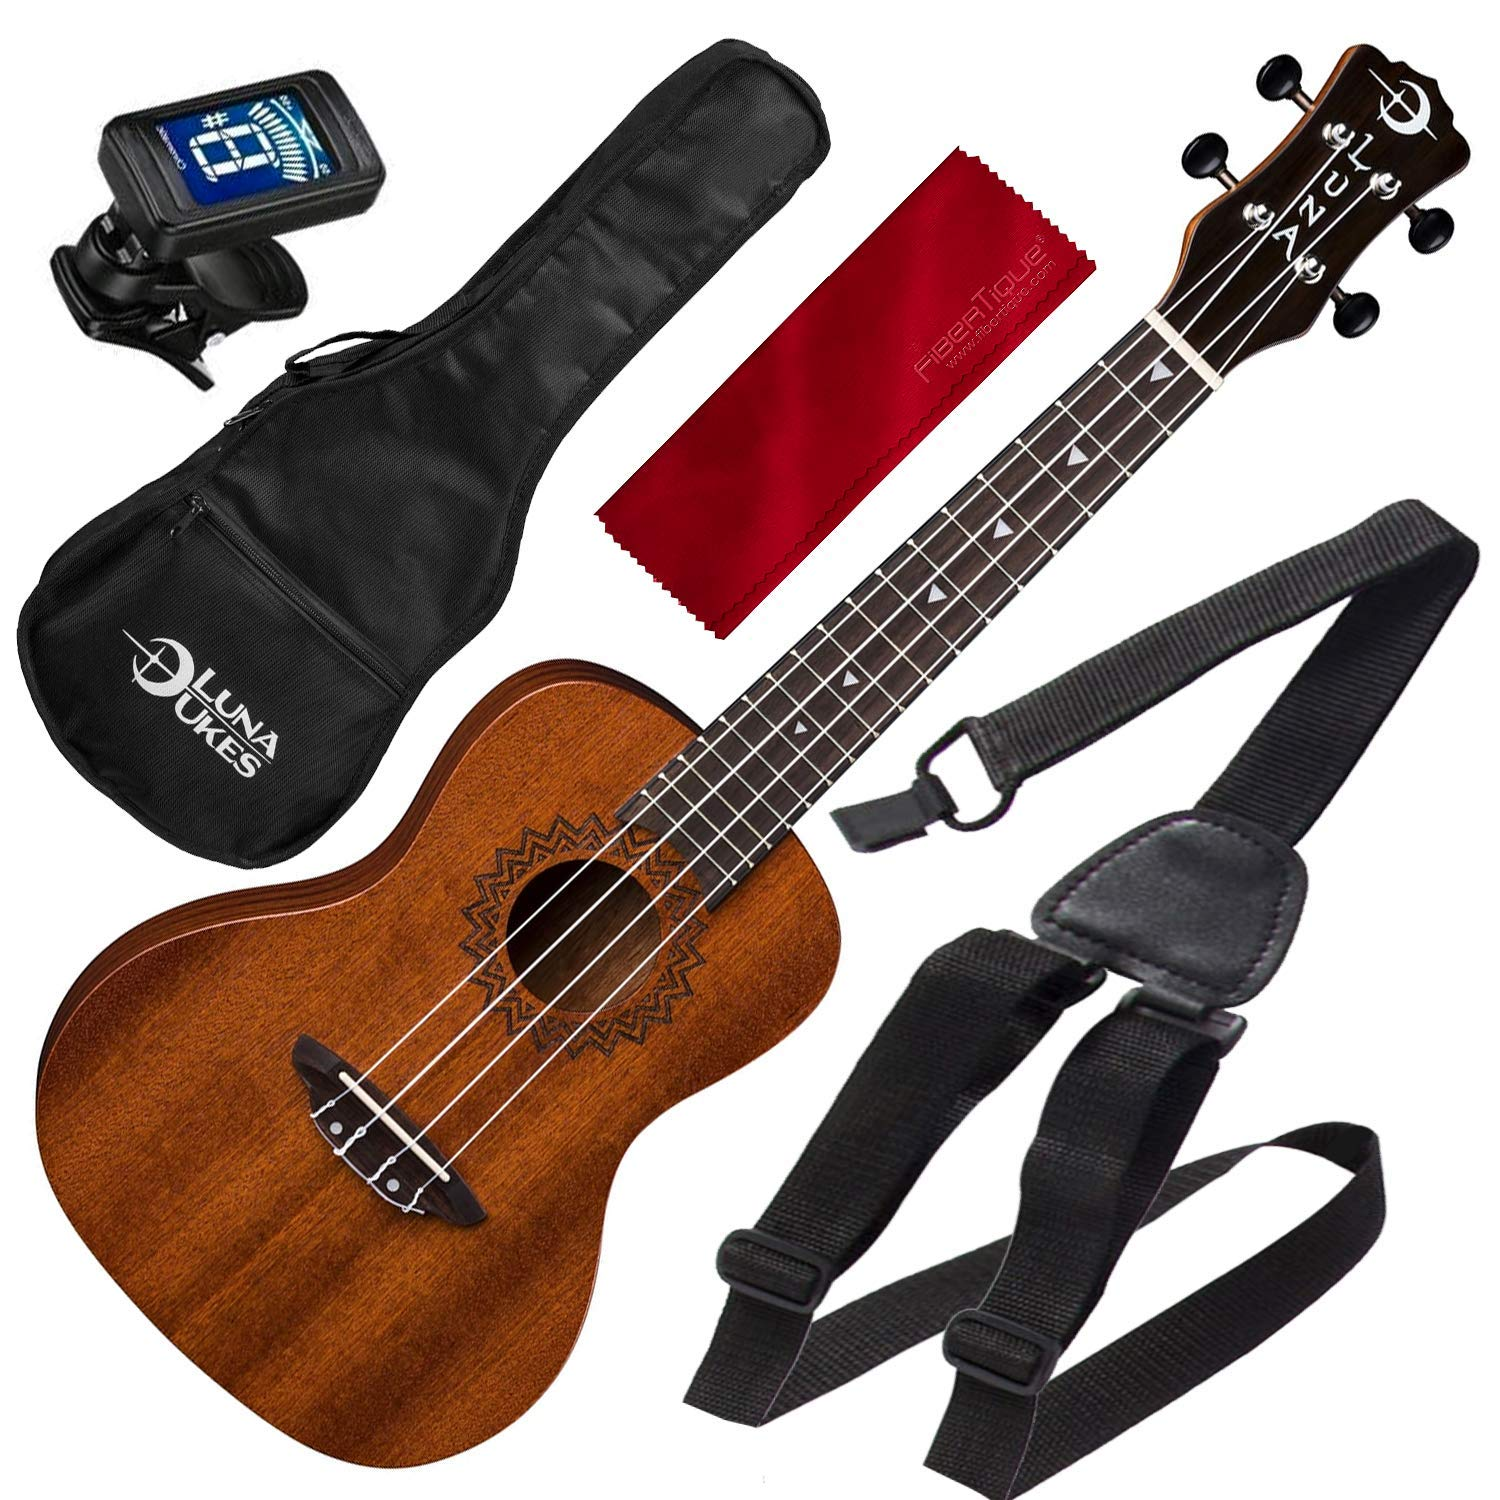 Luna Uke Vintage Mahogany Concert Acoustic Ukulele Pack with Ukulele Strap and Microfiber Cloth by Luna - Photo Savings